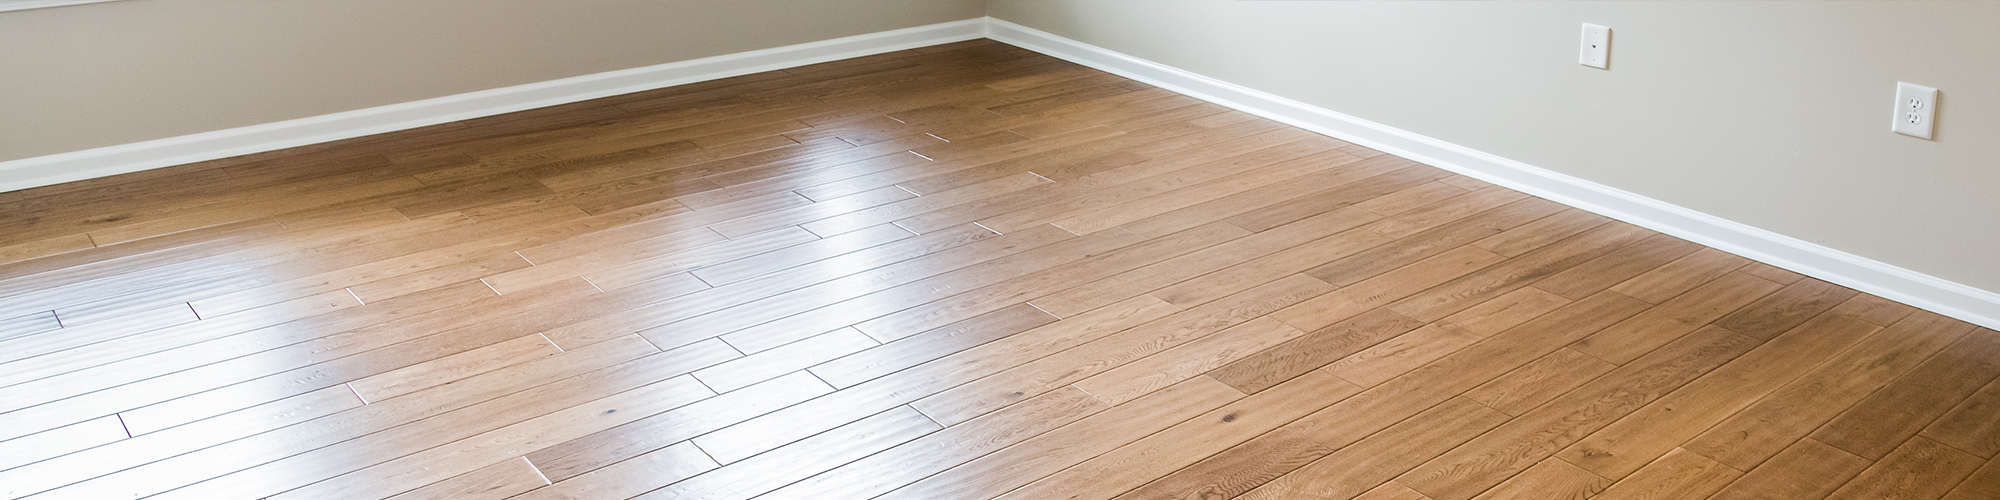 discount hardwood flooring san antonio tx wood floor